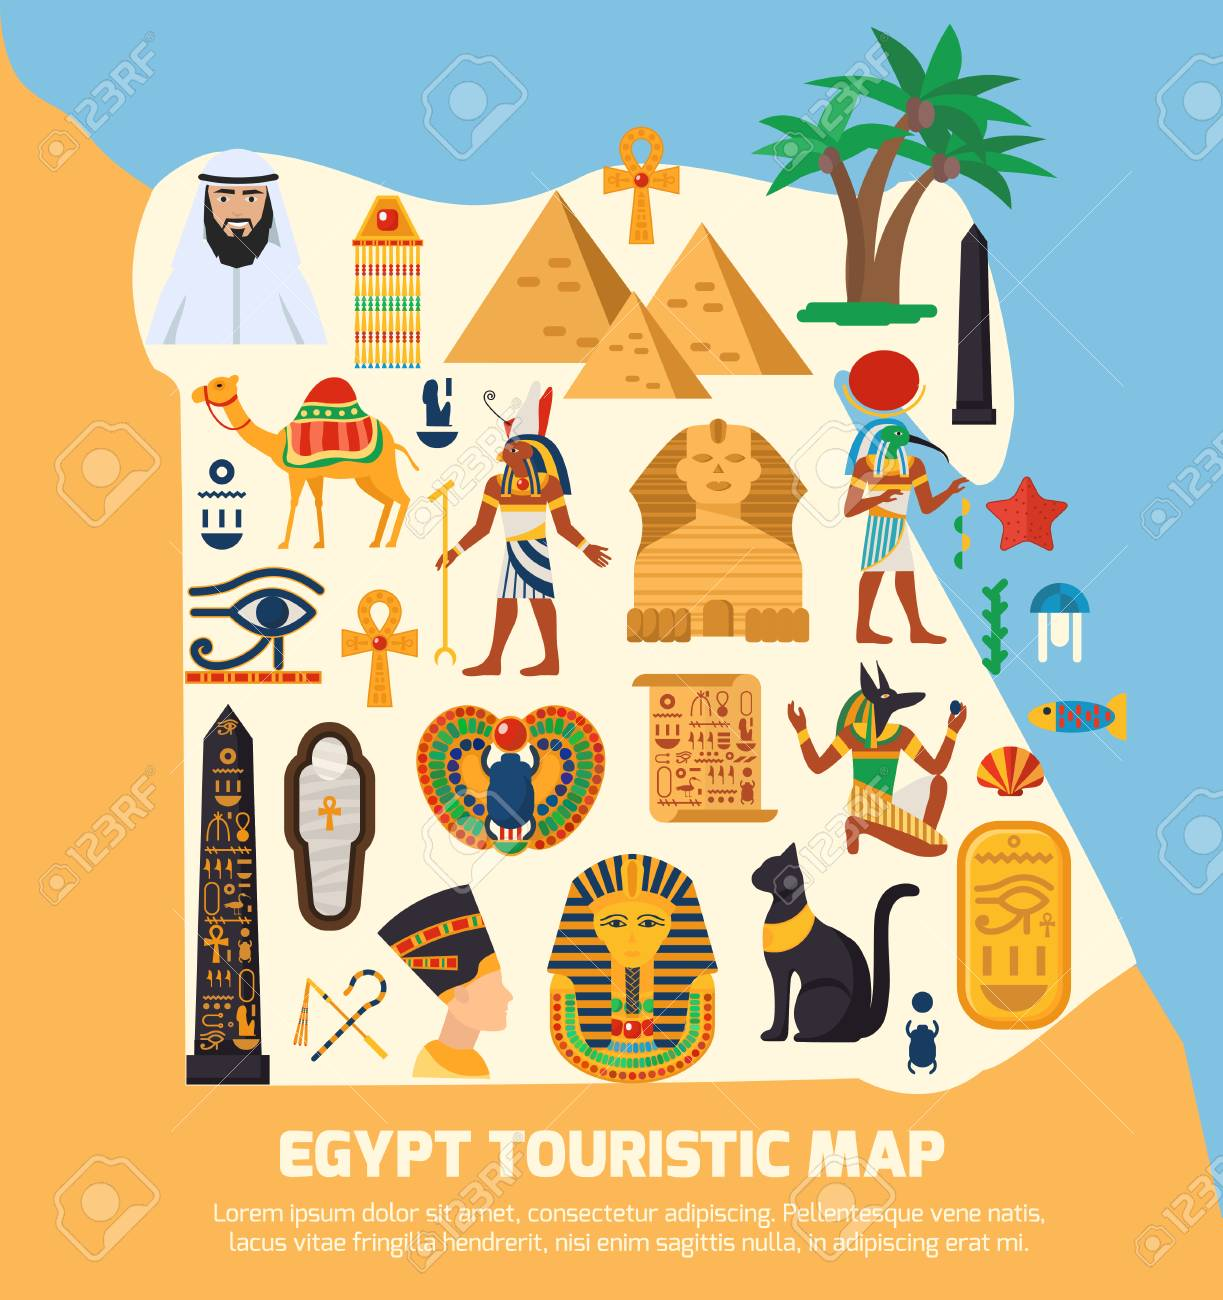 Egypt Touristic Map With National Landmarks And Sights Symbols - National landmarks map